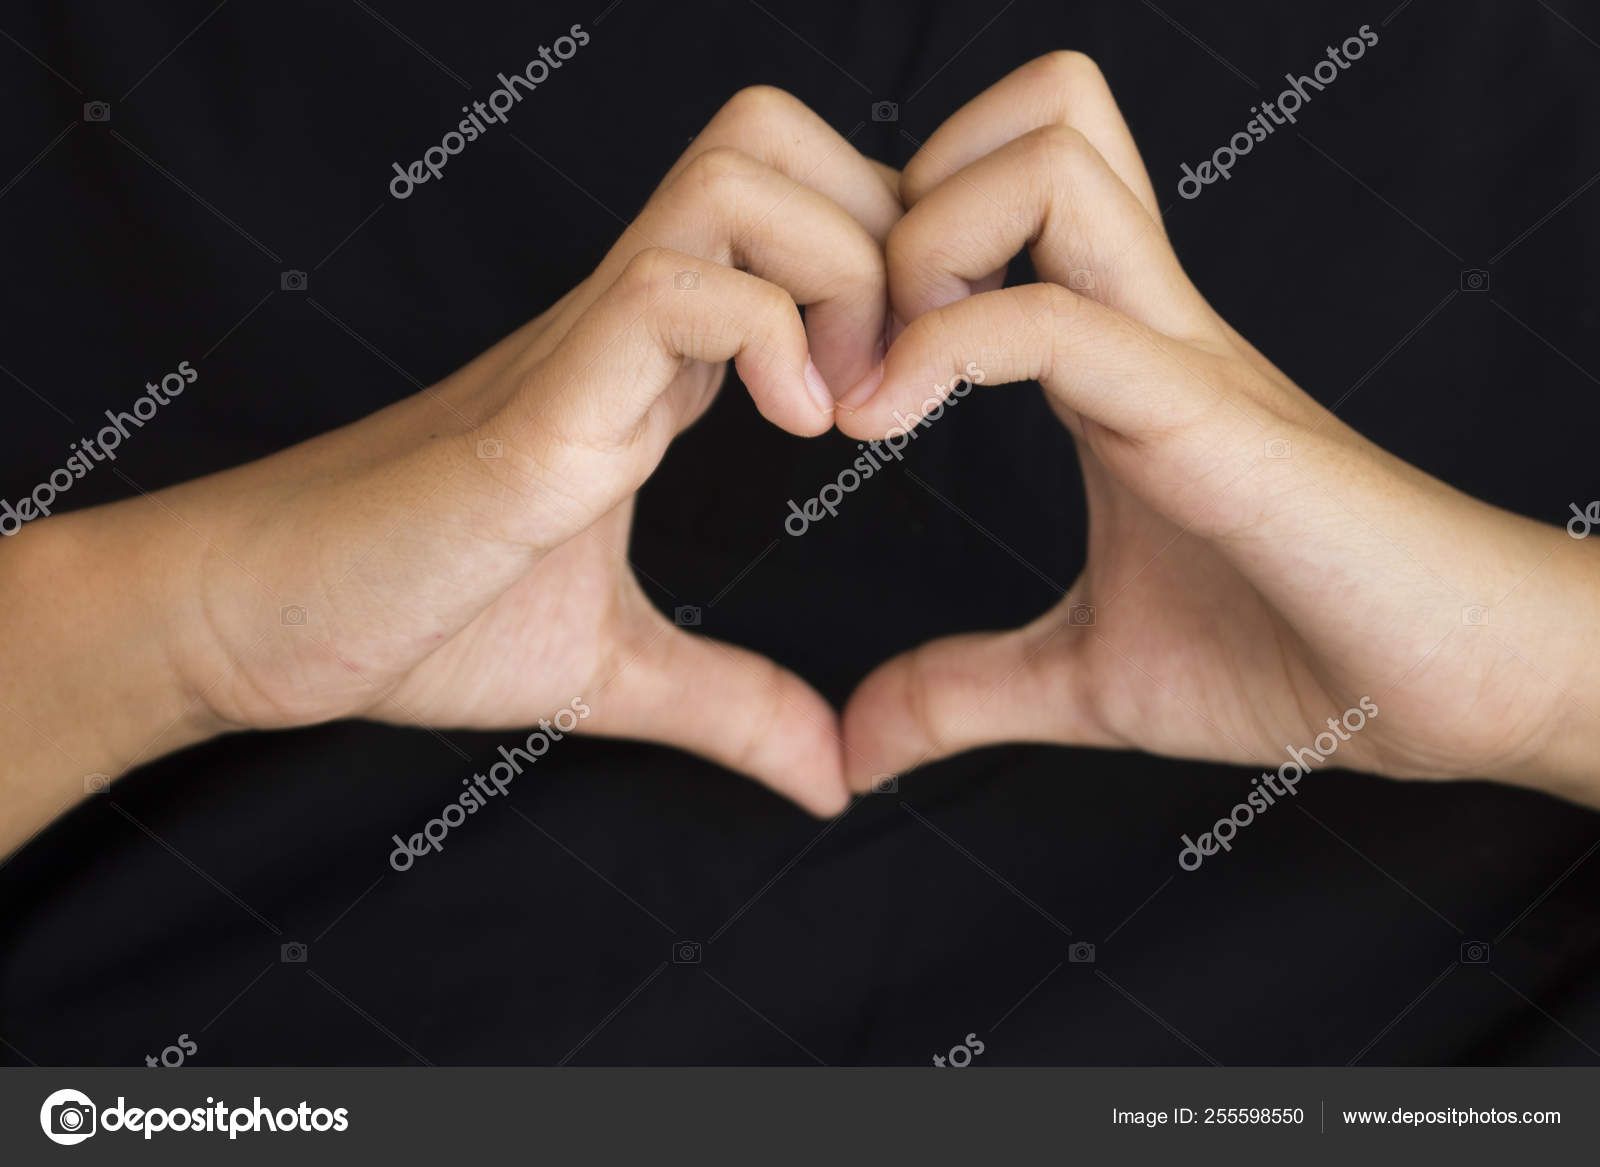 Love You Hand Girl Symbol Gesture Heart Send Love Background Stock Photo C Phenphayom 255598550